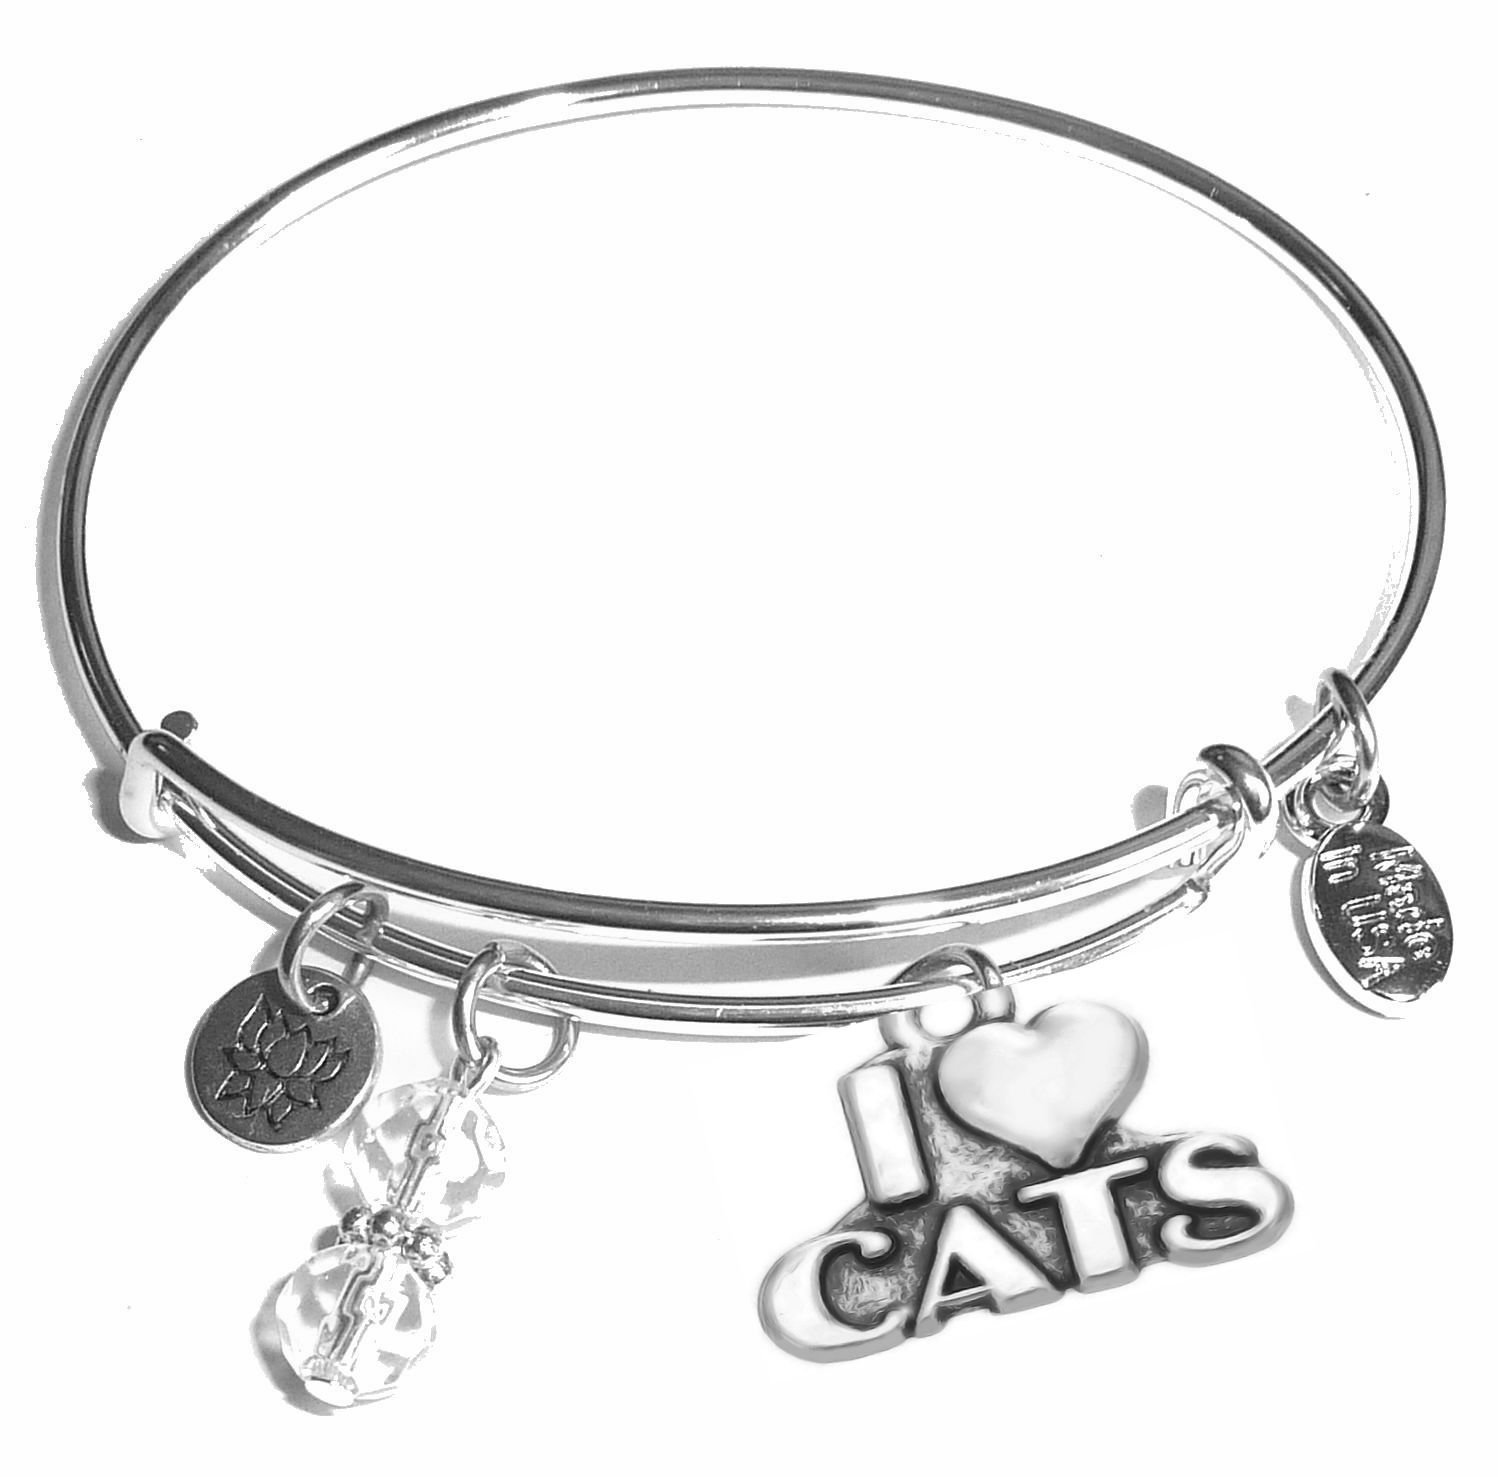 Hidden Hollow Beads Message Charm (84 Options) Expandable Wire Bangle Bracelet, in the popular style, COMES IN A GIFT BOX! COMES IN A GIFT BOX! (Aunt) Bangle Message bracelet